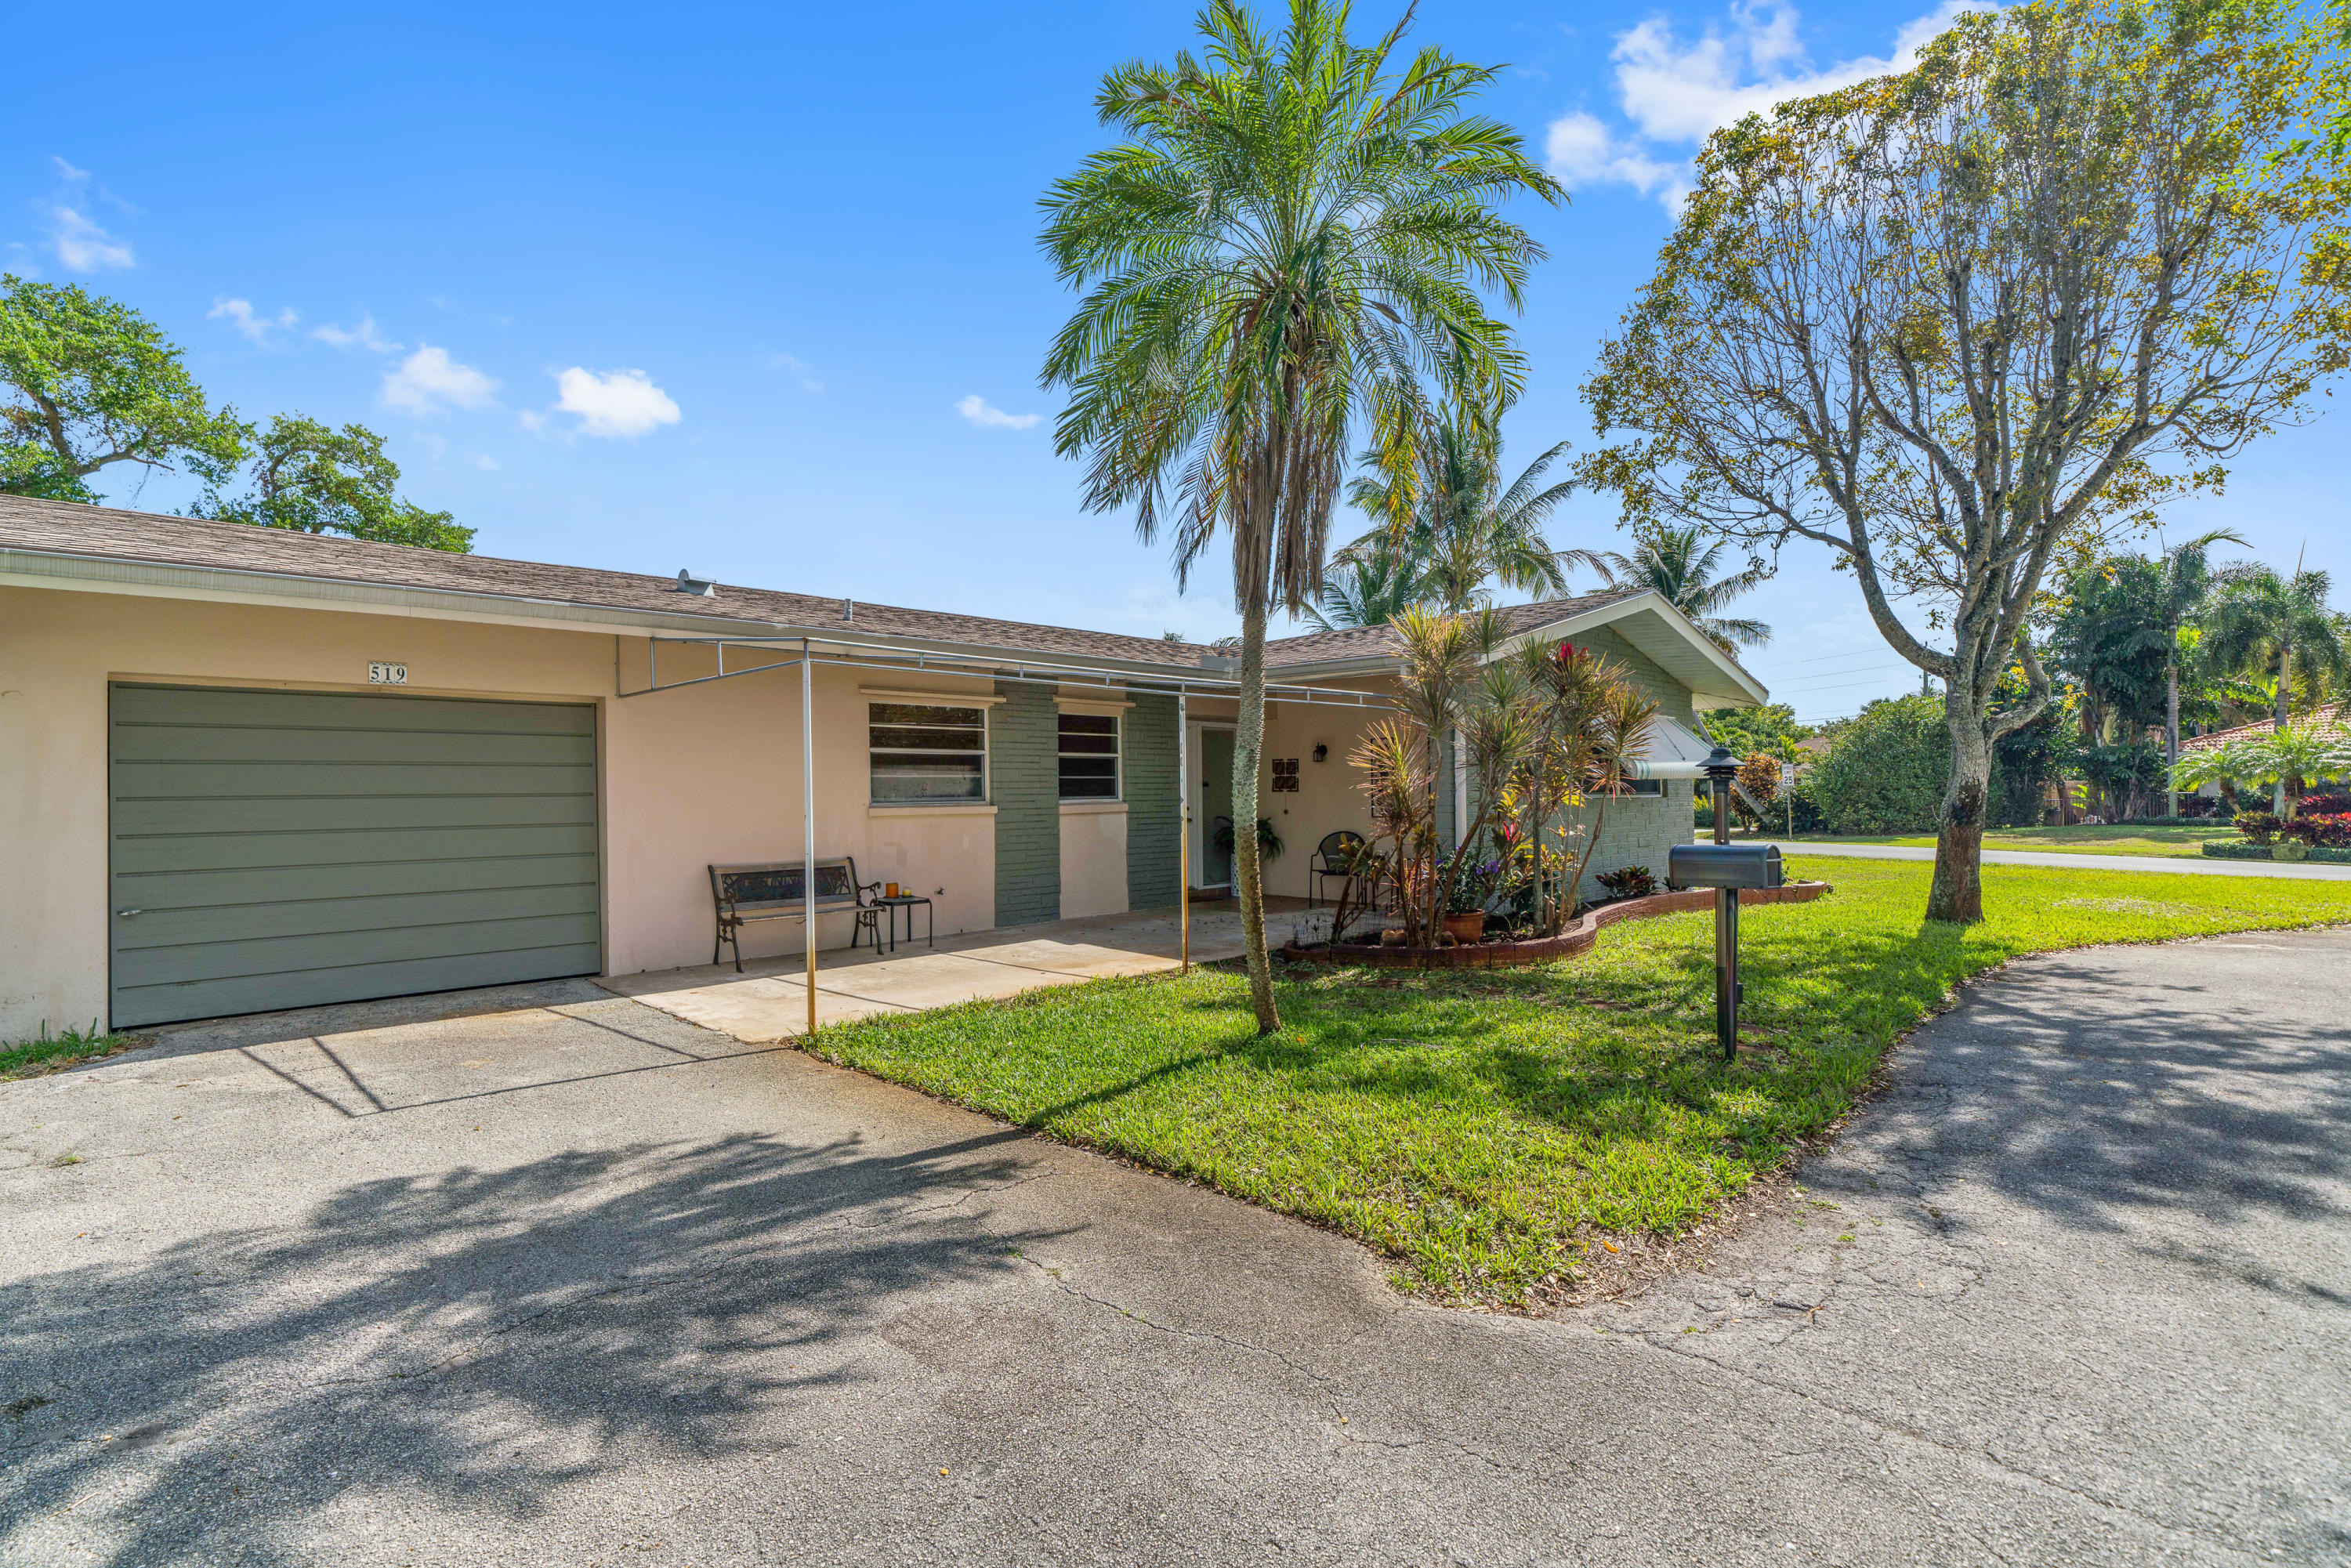 519 NW 7th Street  Delray Beach, FL 33444